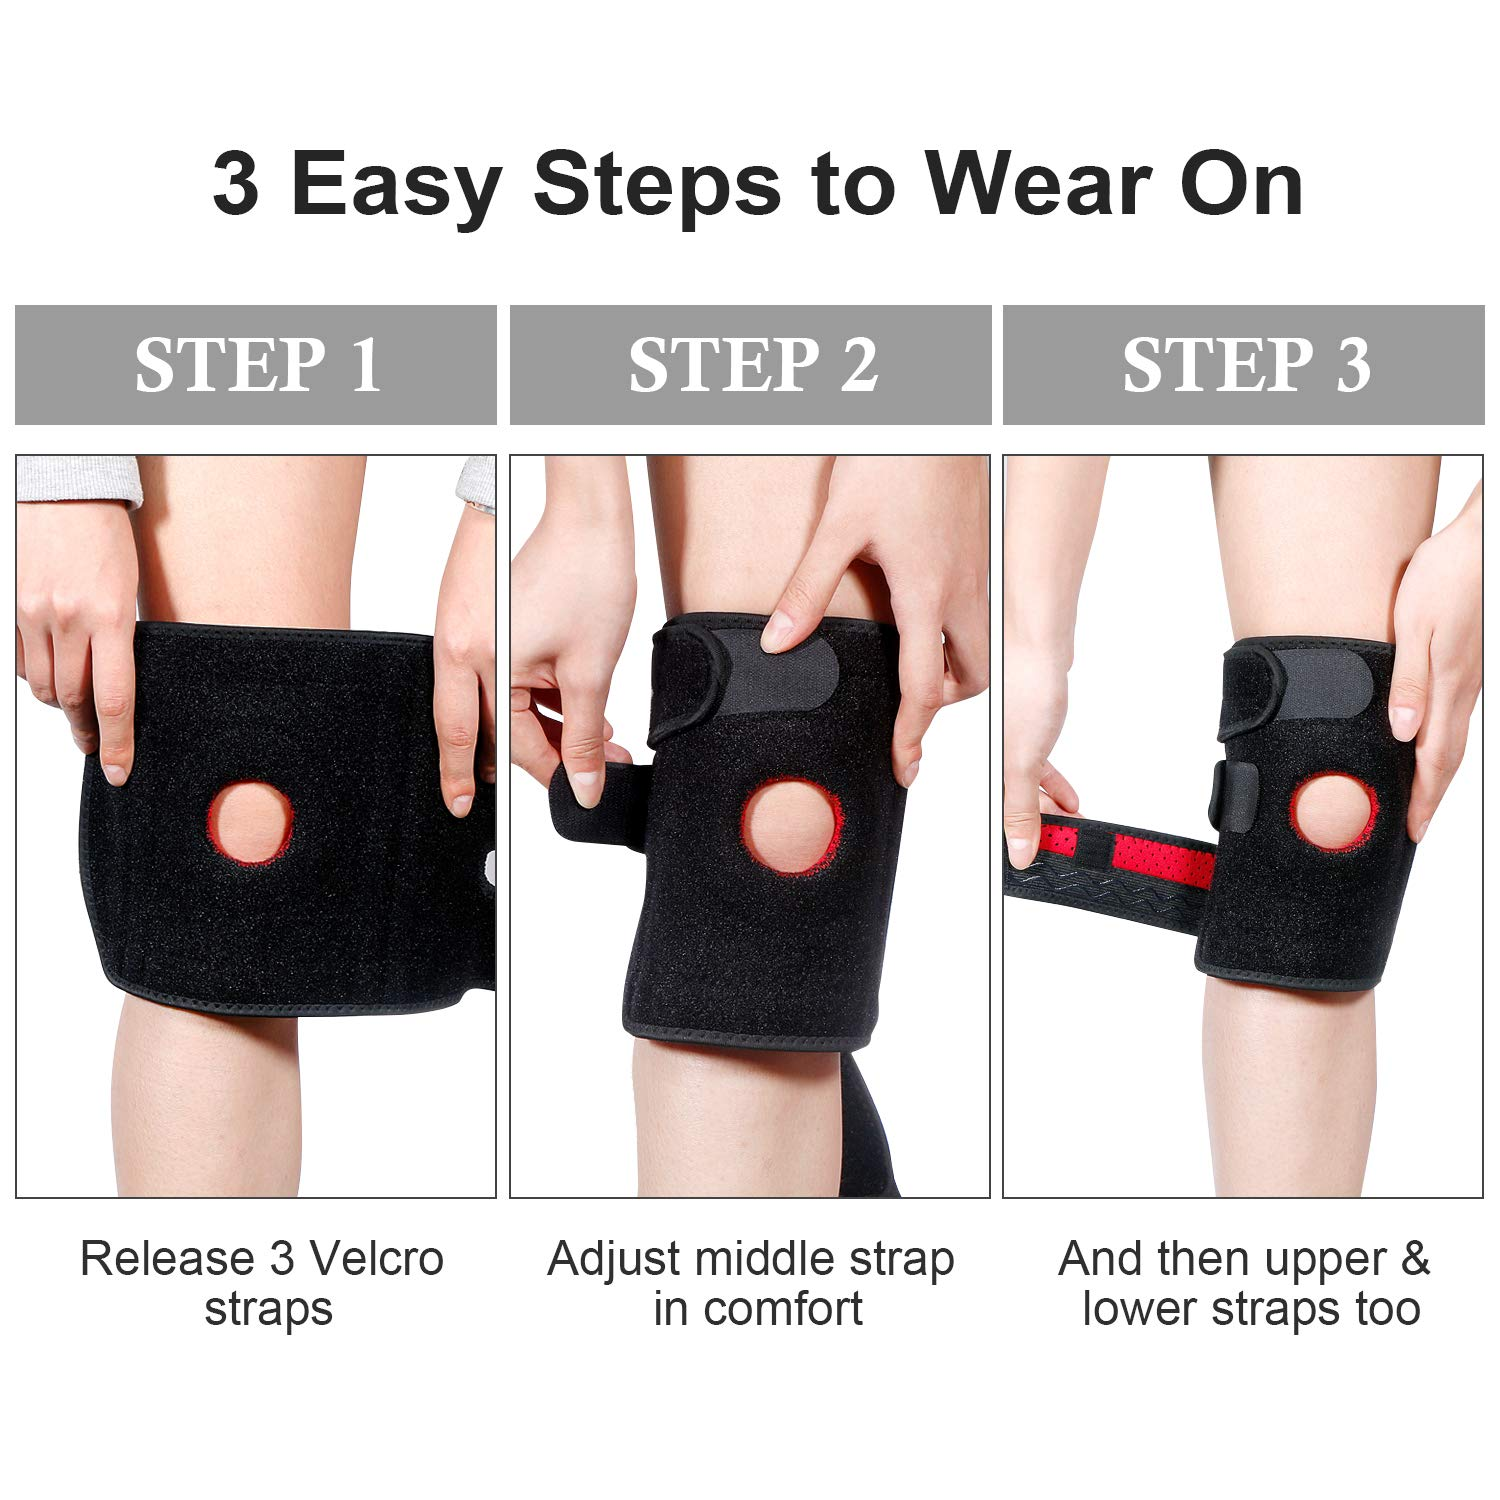 Knee Brace for Women & Men, Knee Support for ACL, LCL, MCL Relief, Pain & Injury Recovery in Running Cycling Volleyball Gym Workout Sport with Adjustable Straps (2 Packs)